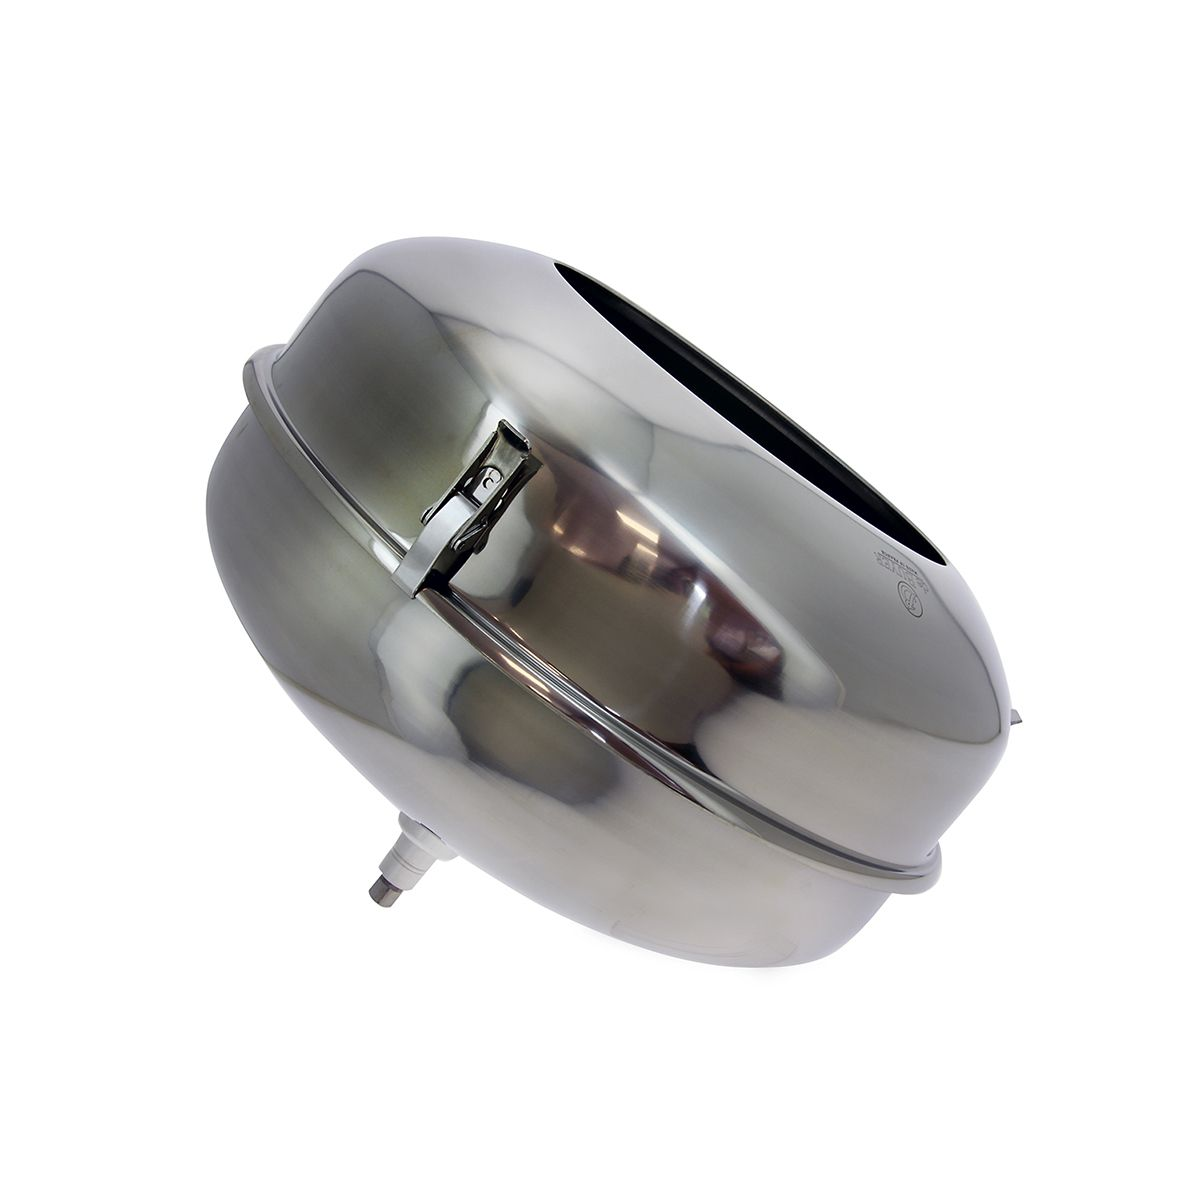 Debuyer confectionery enrobing panning attachment for